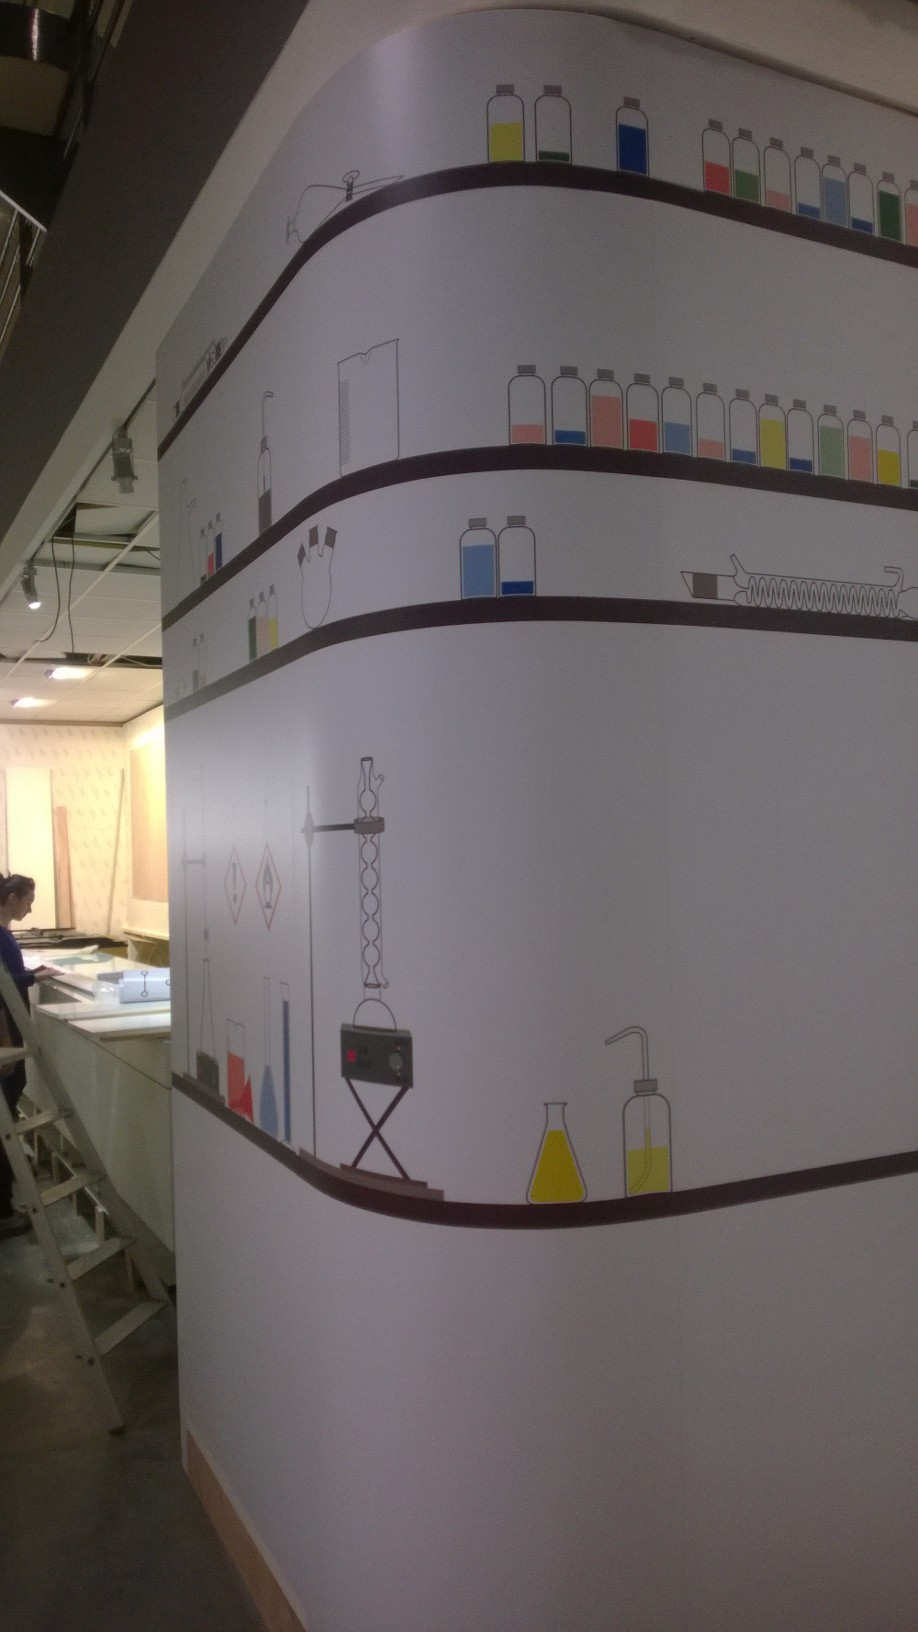 Exposition Chimie